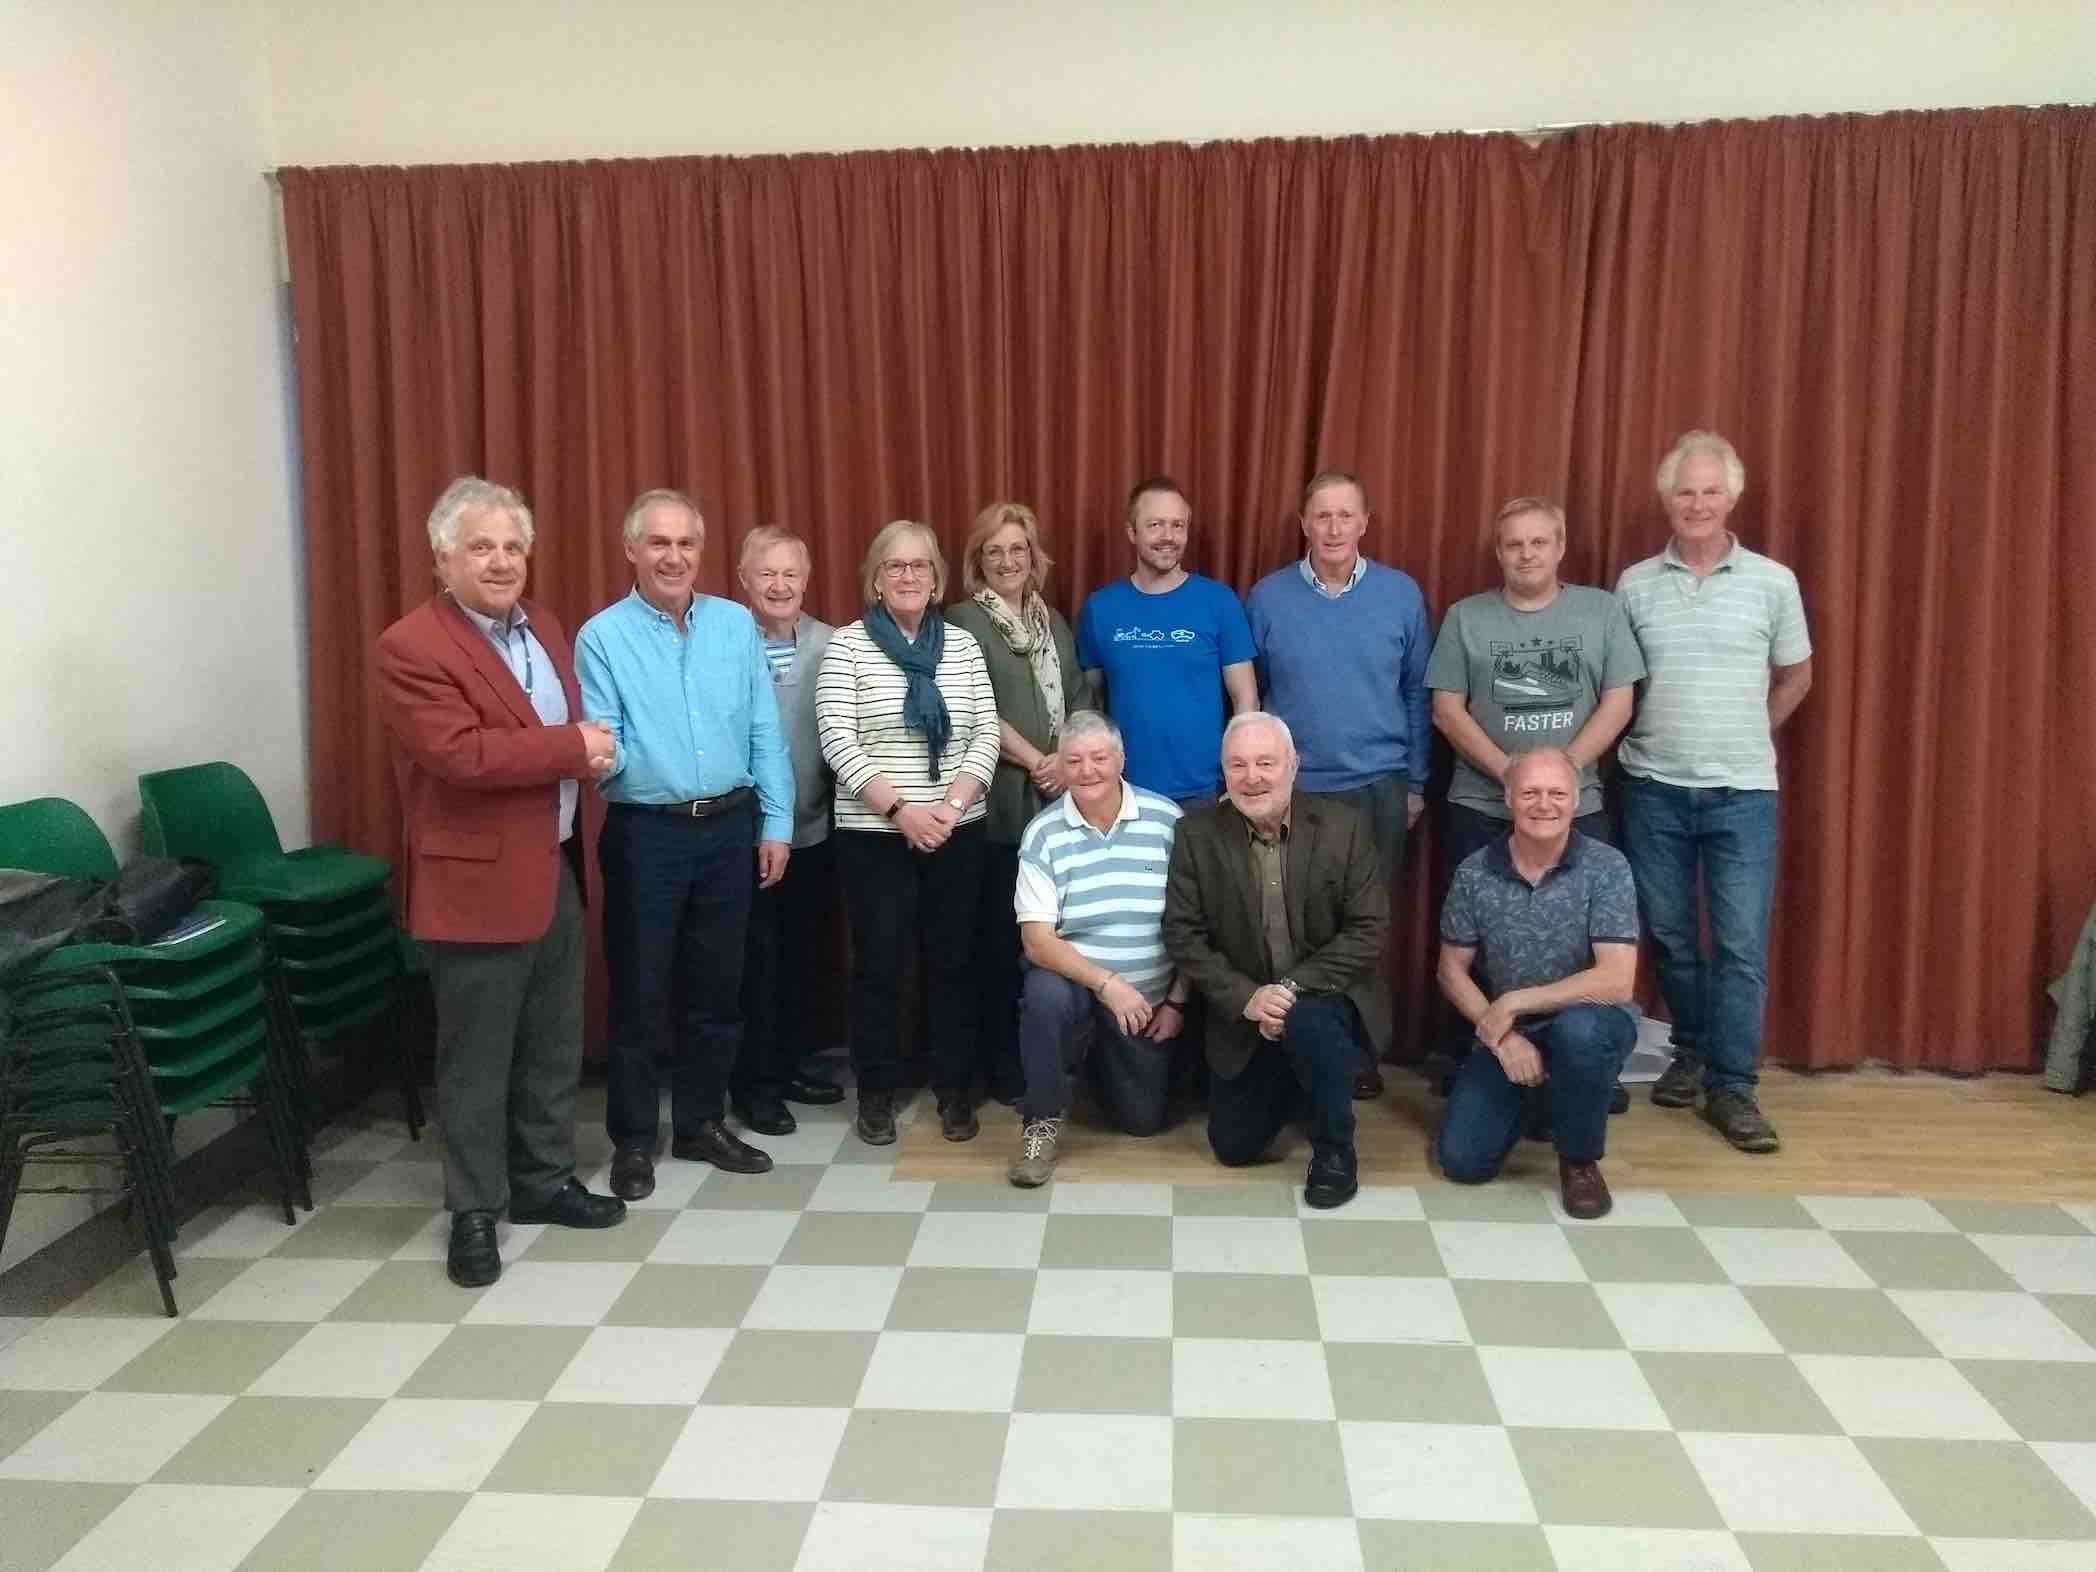 outgoing Lytchett Matravers parish council